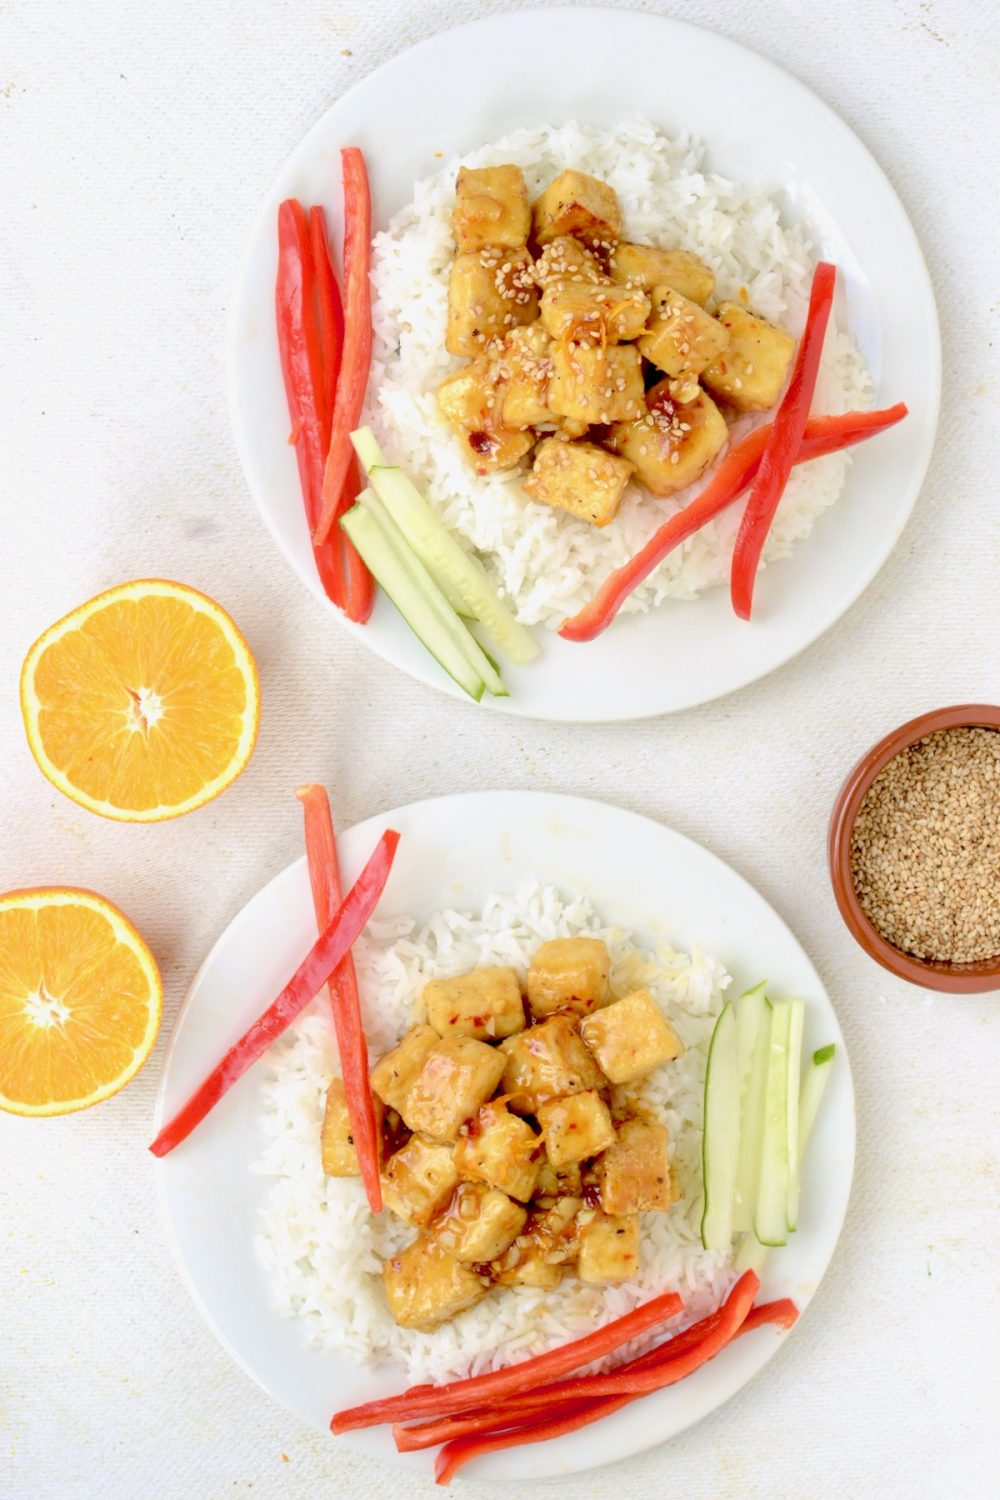 Two servings of Orange Tofu with white rice and raw vegetables, next to two orange halves and a small pot of toasted sesame seeds viewed from above.